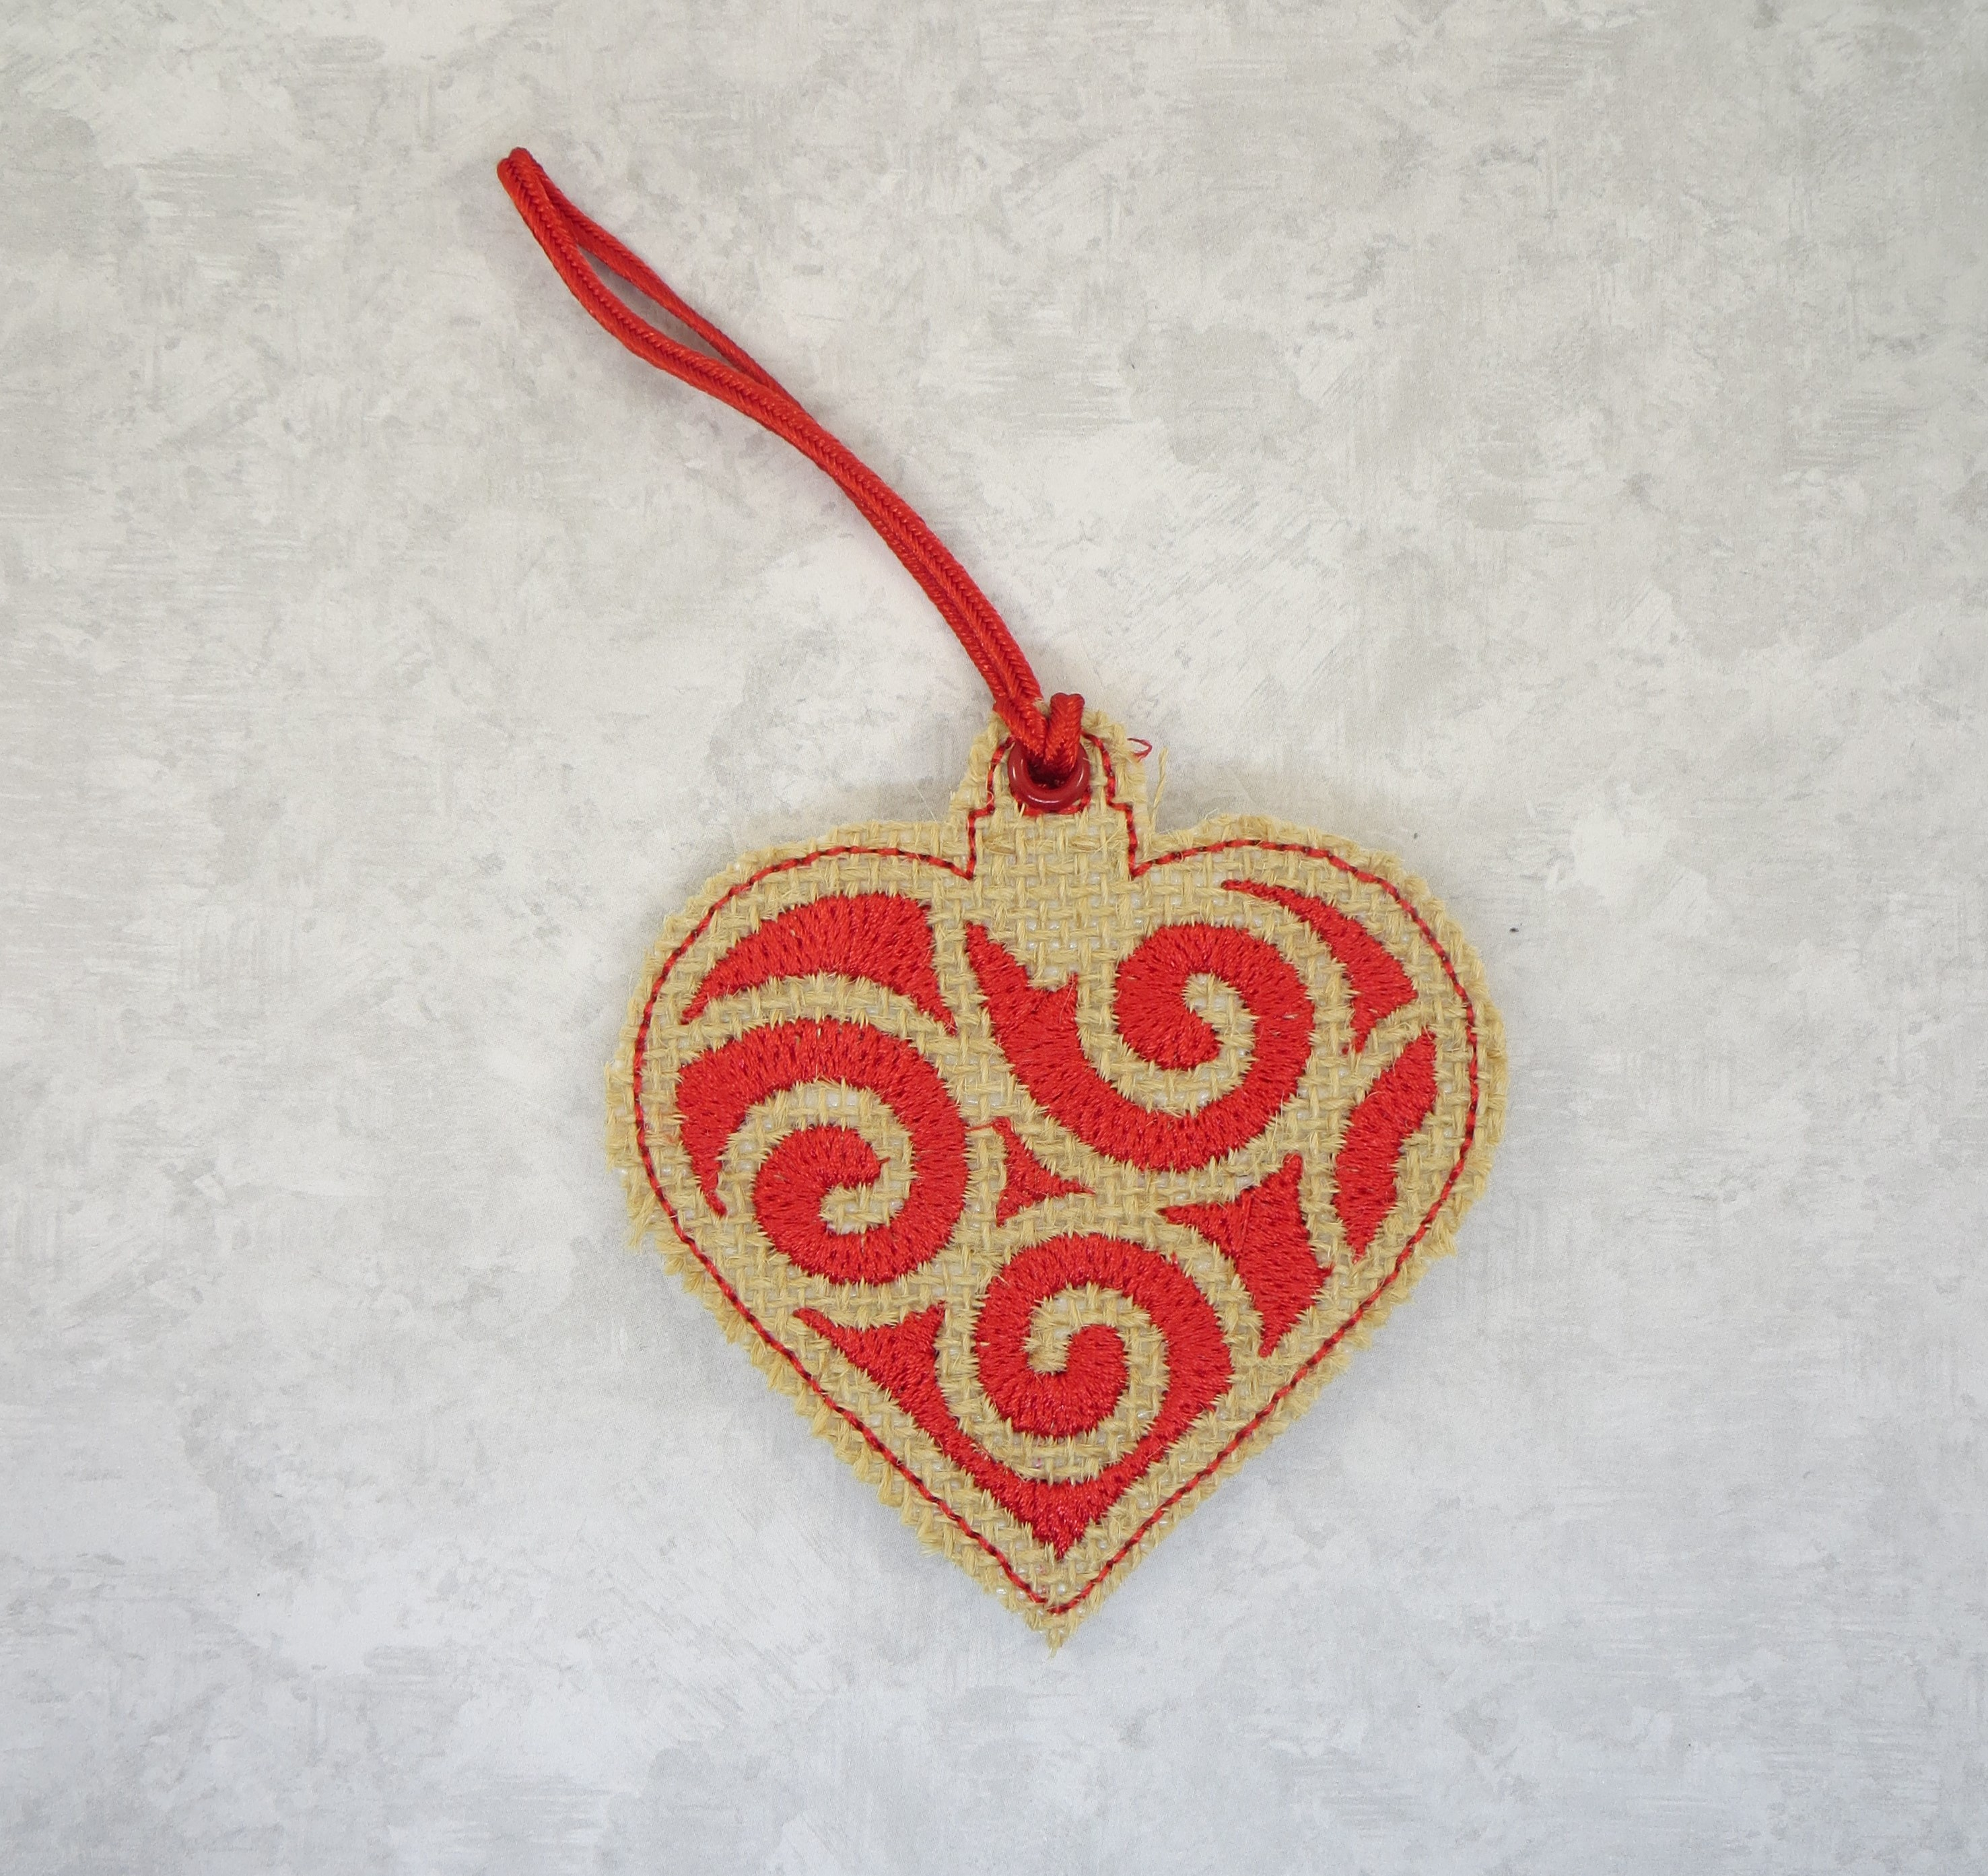 Fancy Scroll Heart Ornament Embroidery Design